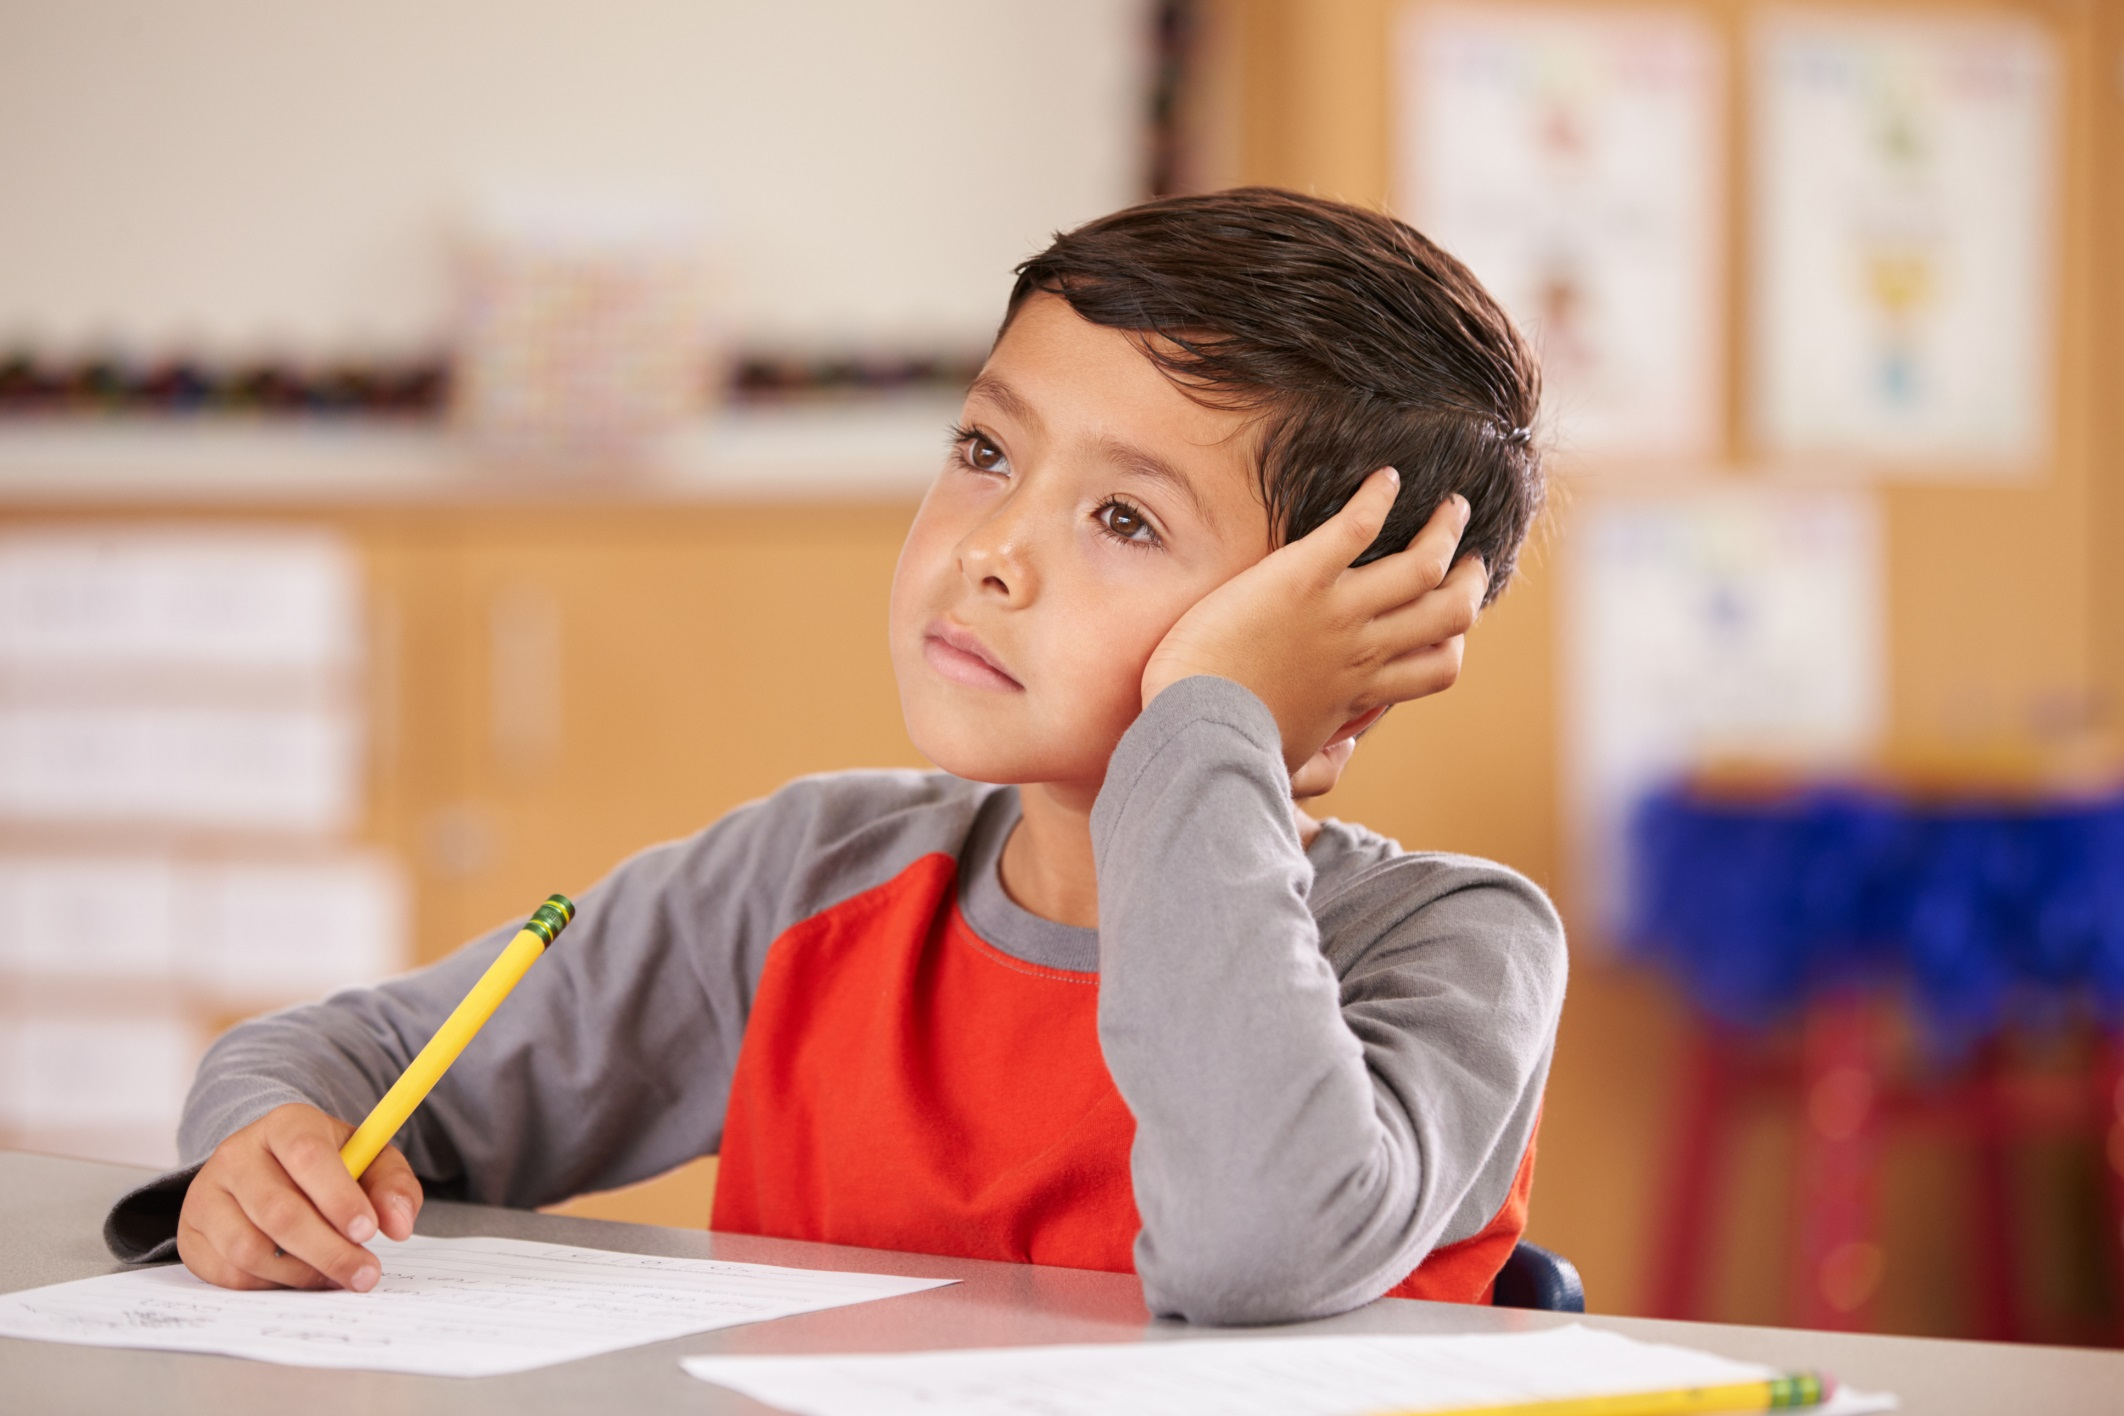 Symptoms of Anxiety Disorders in Children: Signs of Anxiety